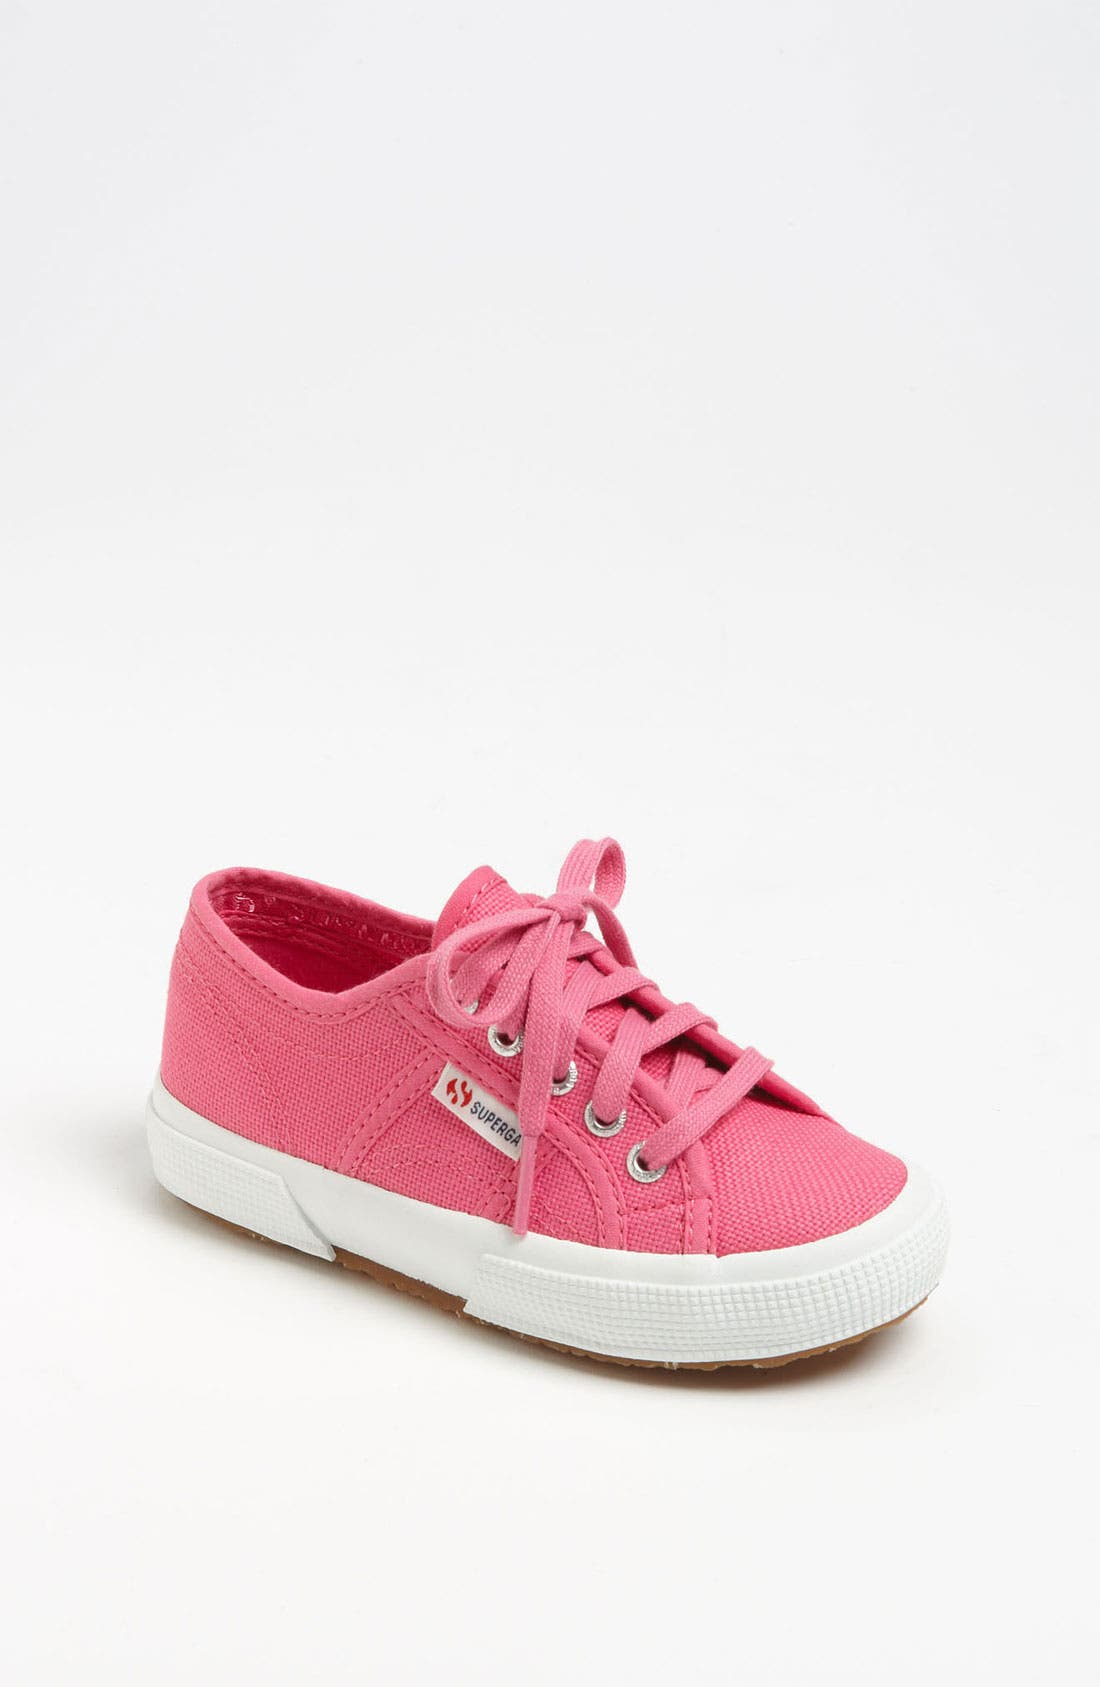 Alternate Image 1 Selected - Superga 'Junior Classic' Sneaker (Walker, Toddler & Little Kid)